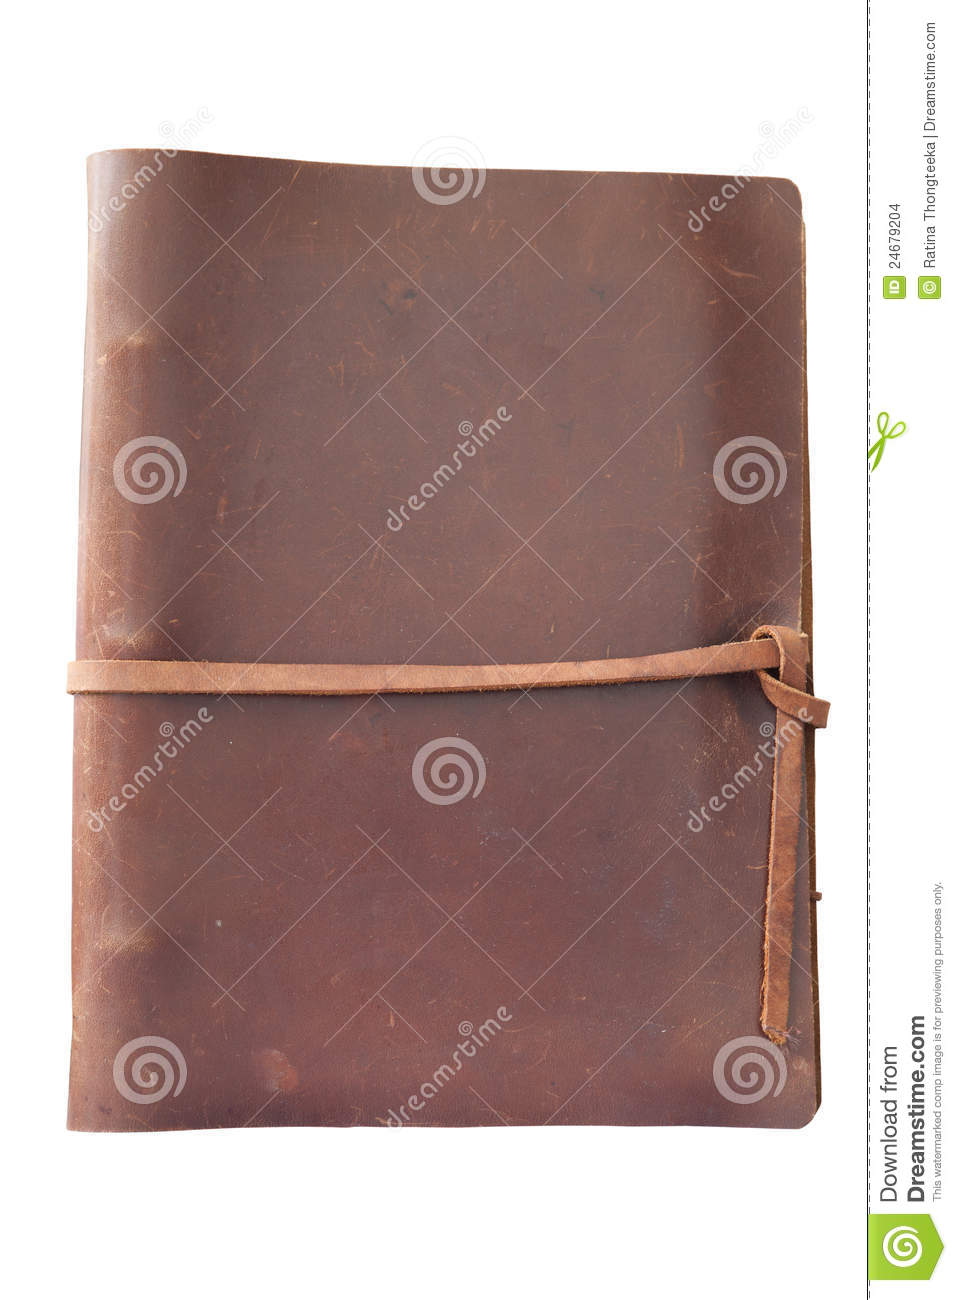 Book Cover Images Royalty Free ~ Closeup of leather book cover royalty free stock image